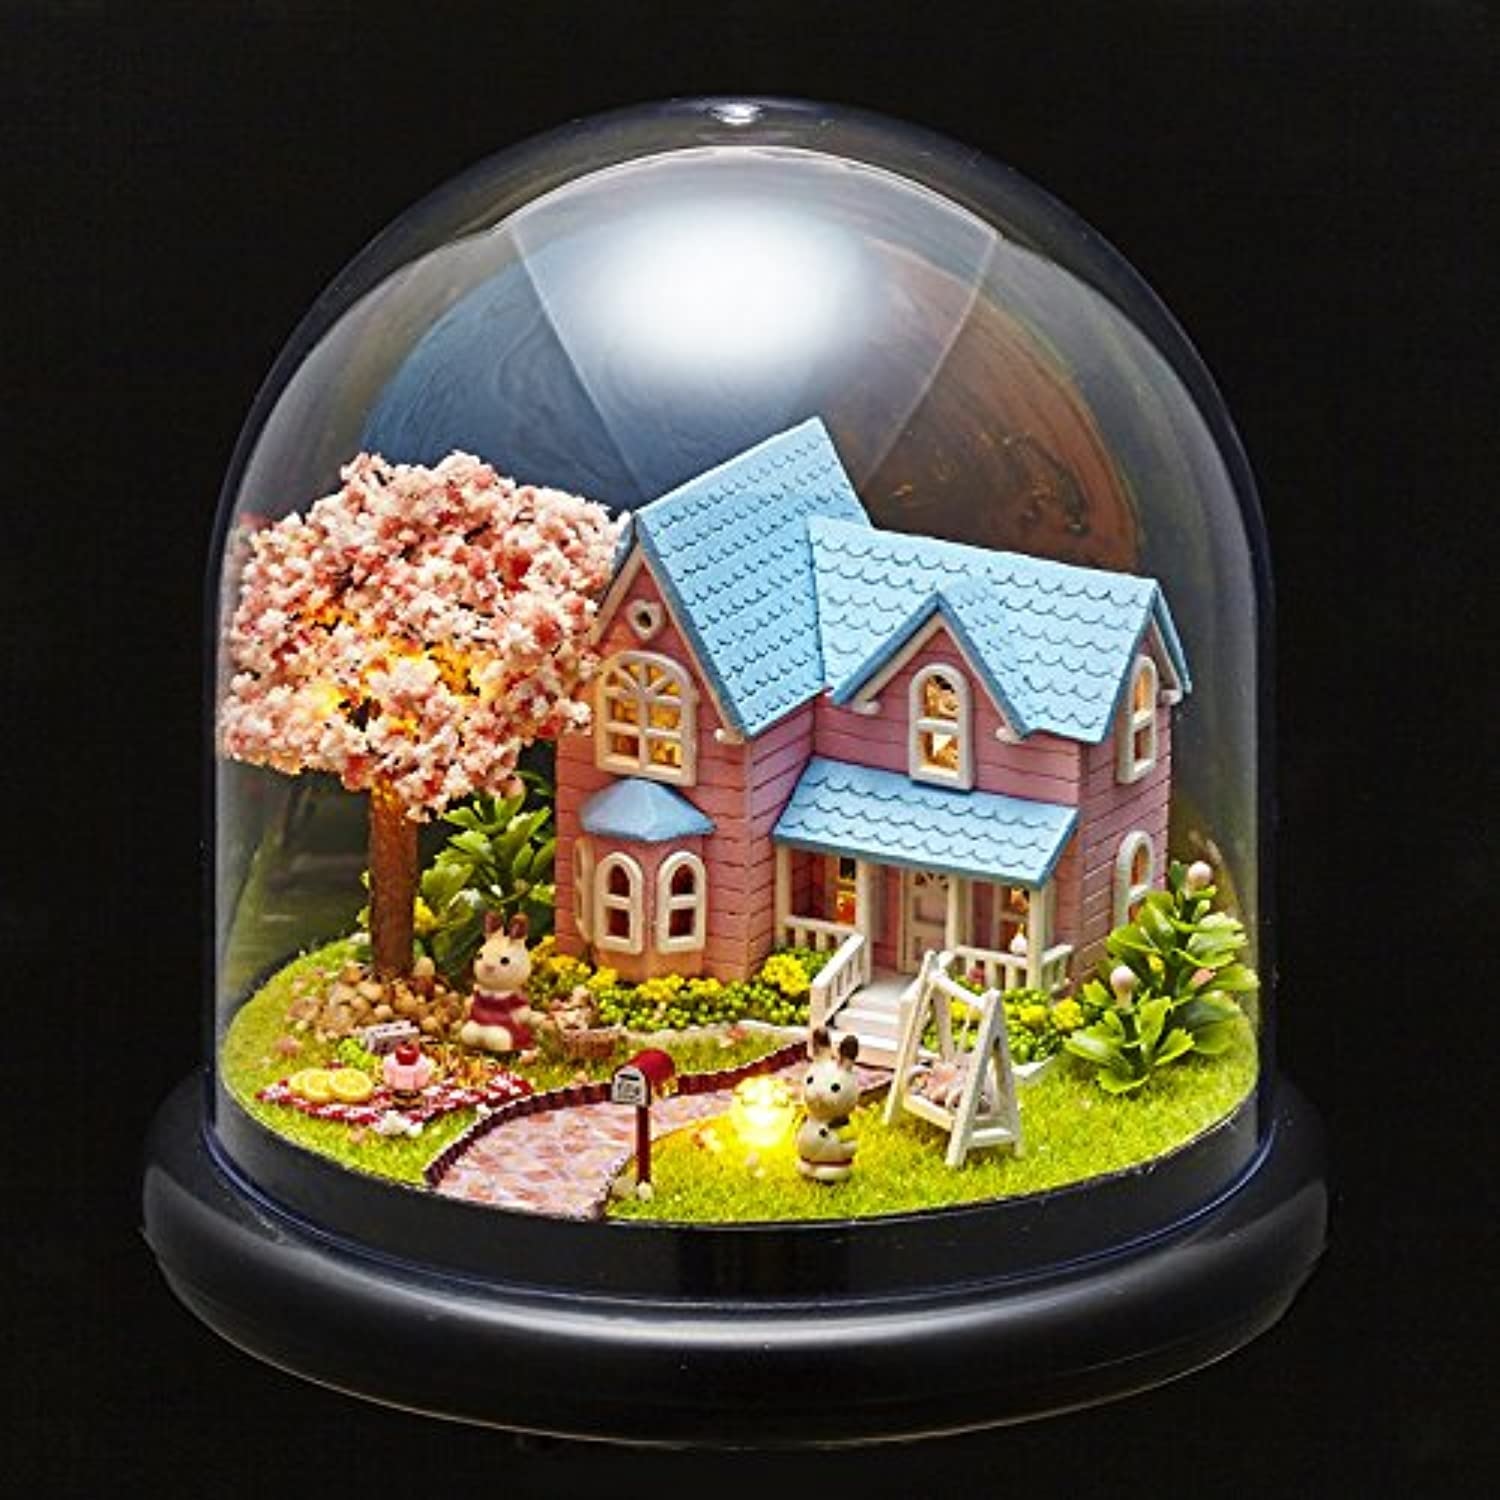 Zhoyea Music Box DIY Cherry Blossoms Tree and Villa Model with Transparent Cover Music Box for Girlfriend Meaningful Gift